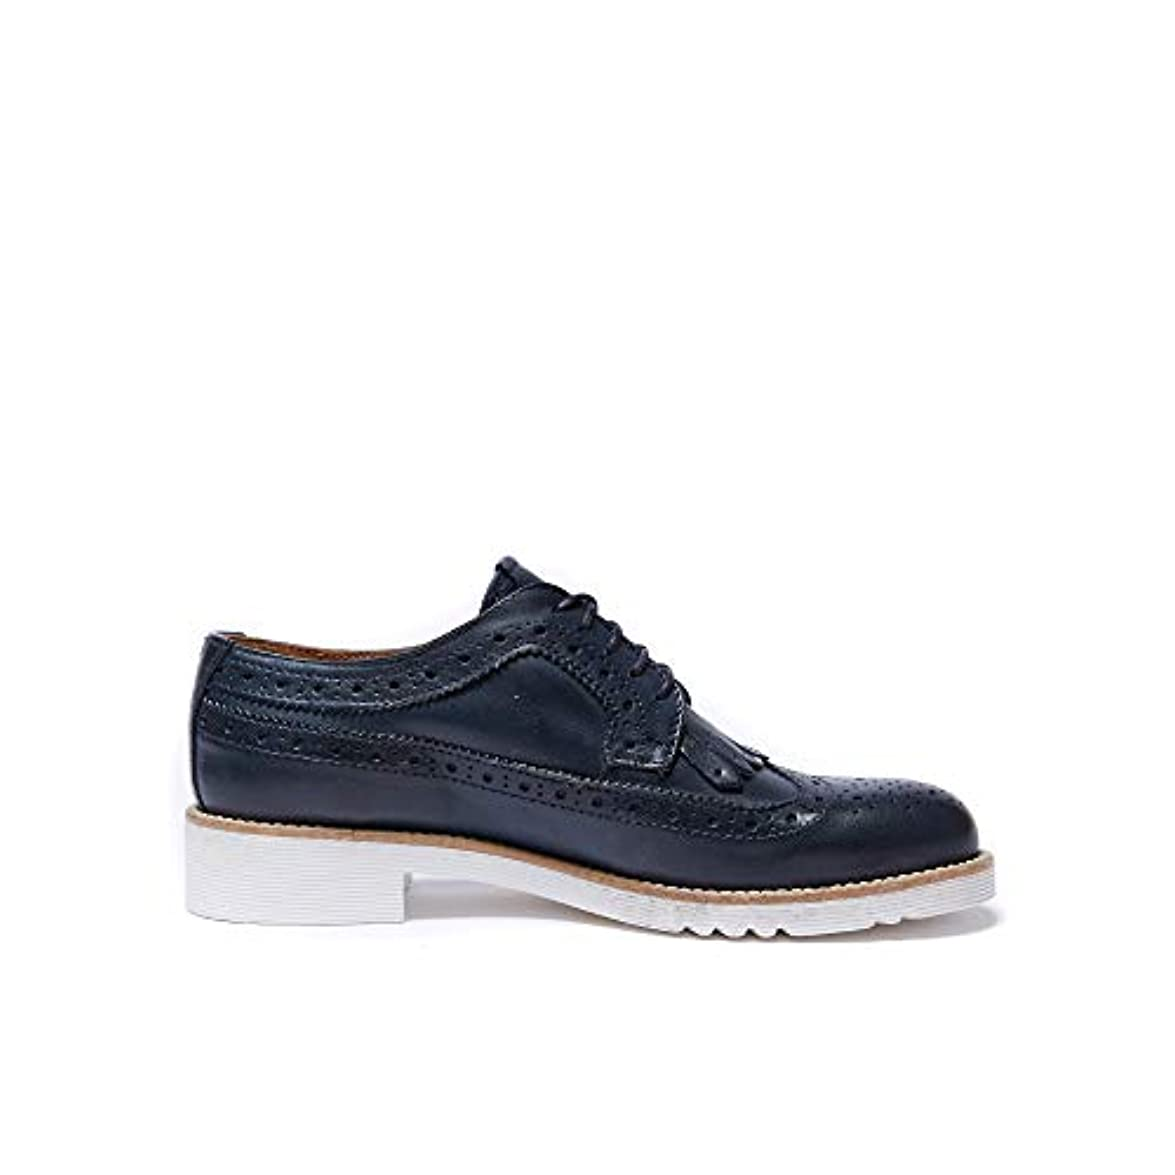 Scarpa Stringata Derby Con Decorazione Wing Cap Di Colore Blu Navy Donna